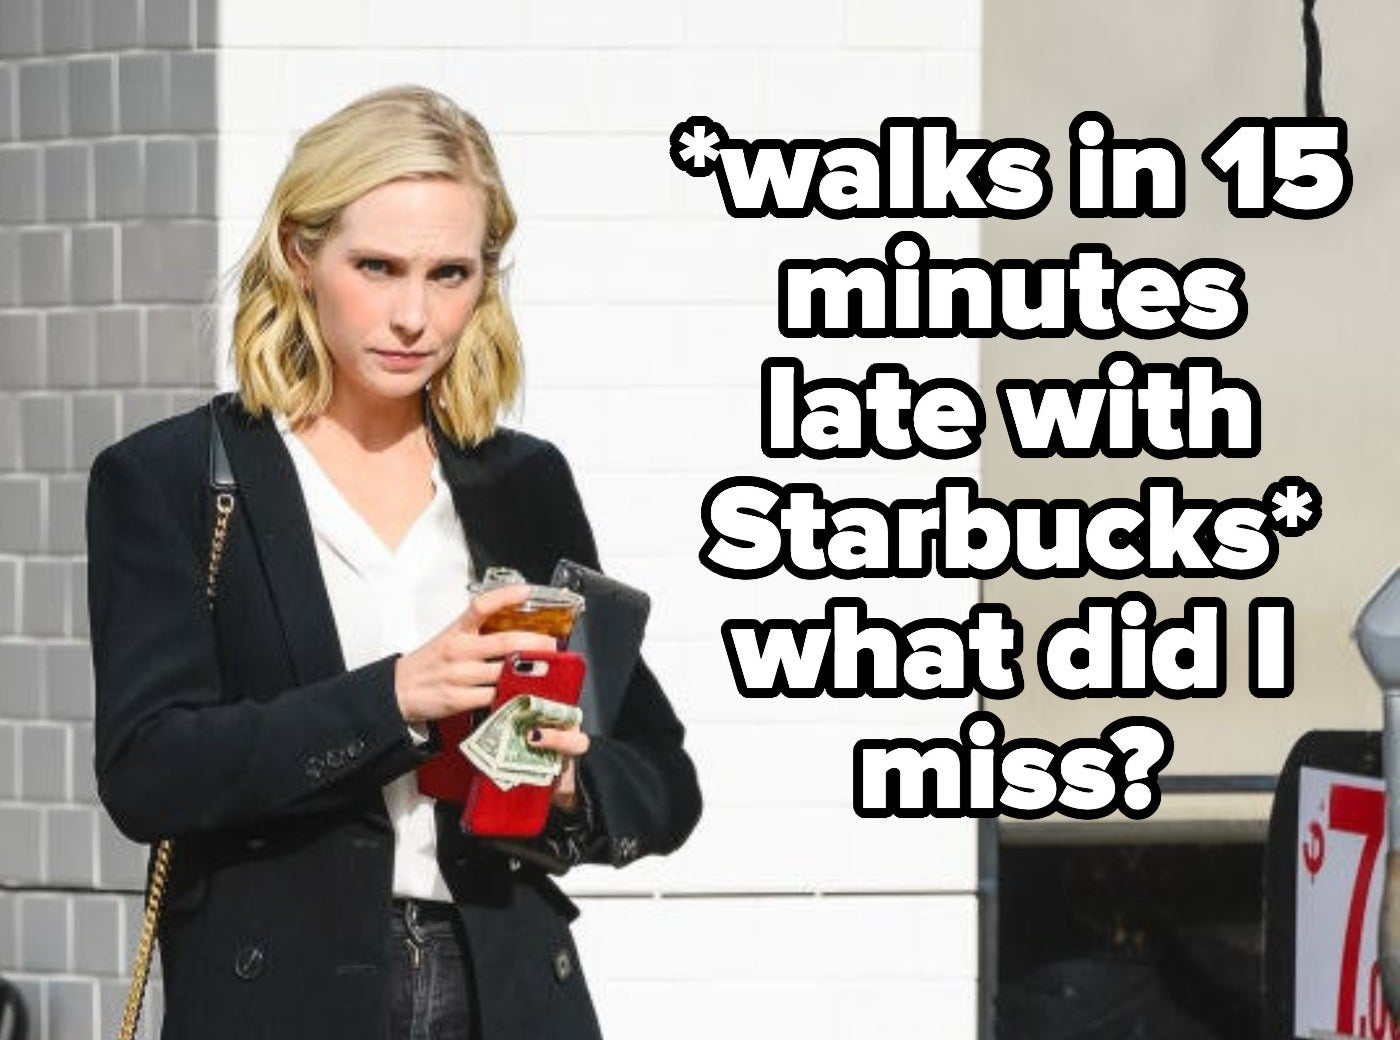 """Candice King walking with coffee with the text """"*walks in 15 minutes late with Starbucks* what did I miss?"""""""